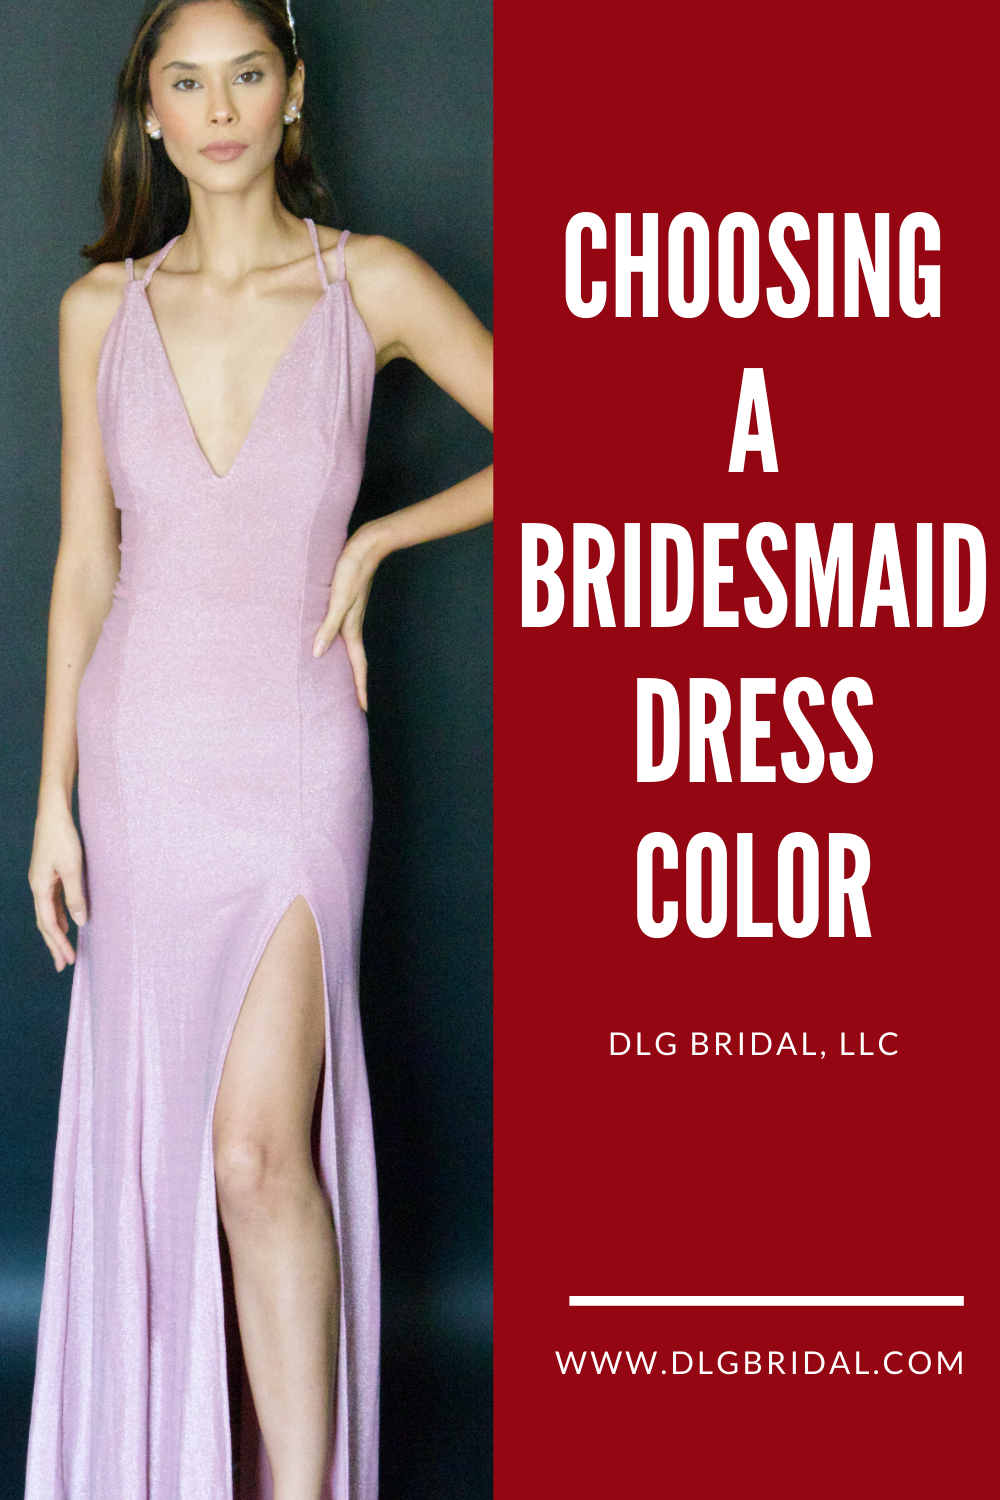 Tips For Choosing Bridesmaid Dress Colors